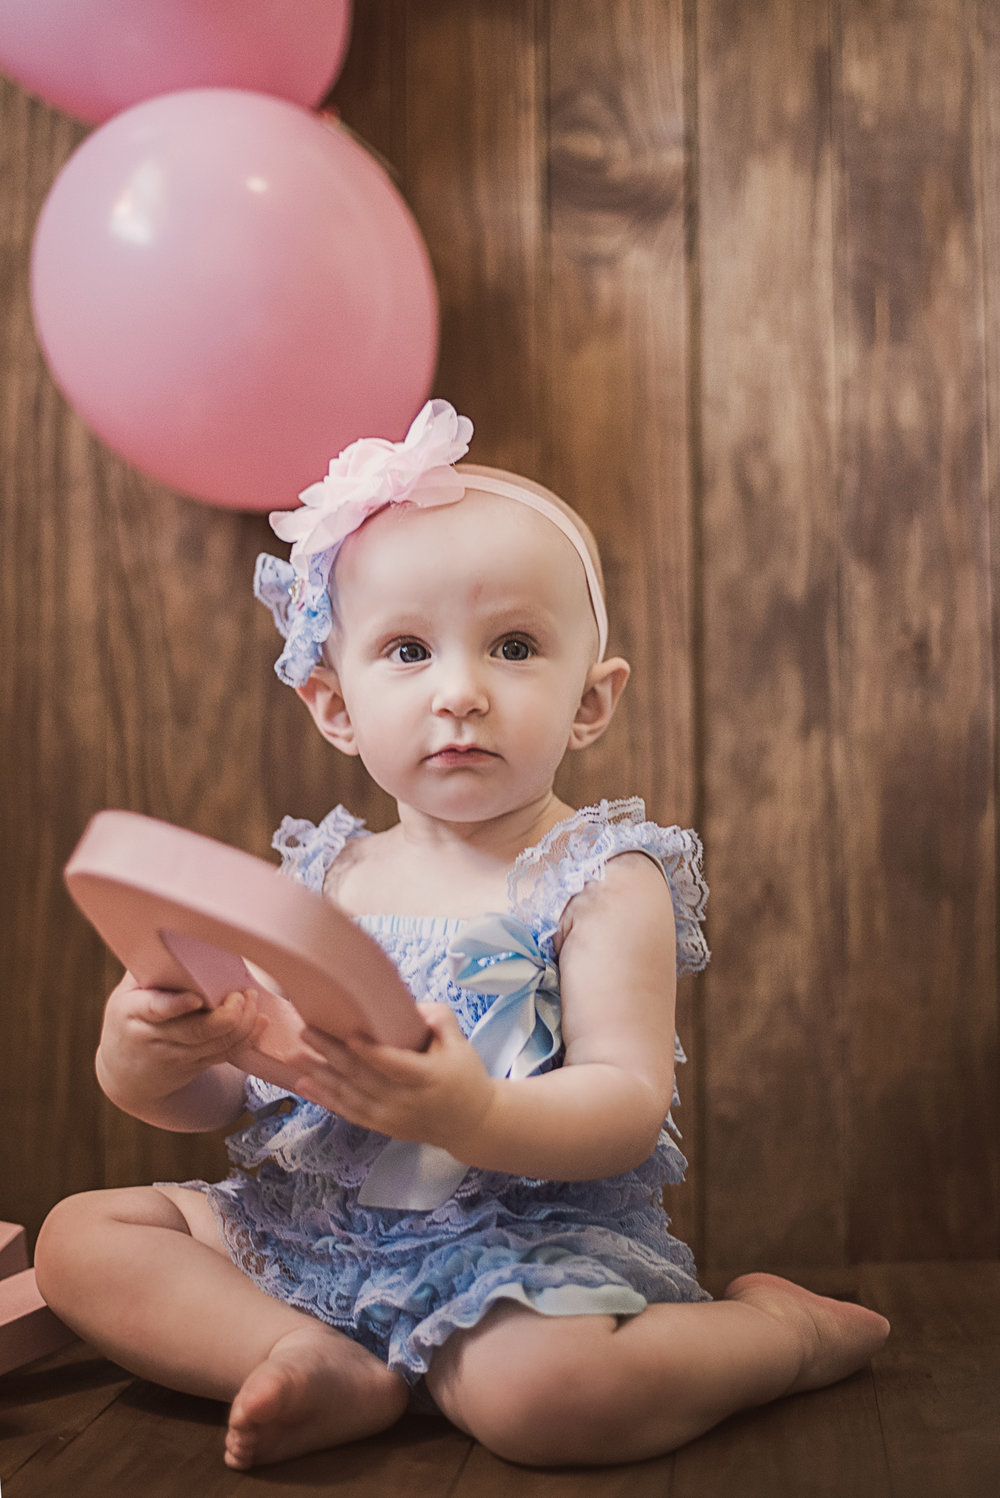 connecticut-first-birthday-cake-smash-photo-session